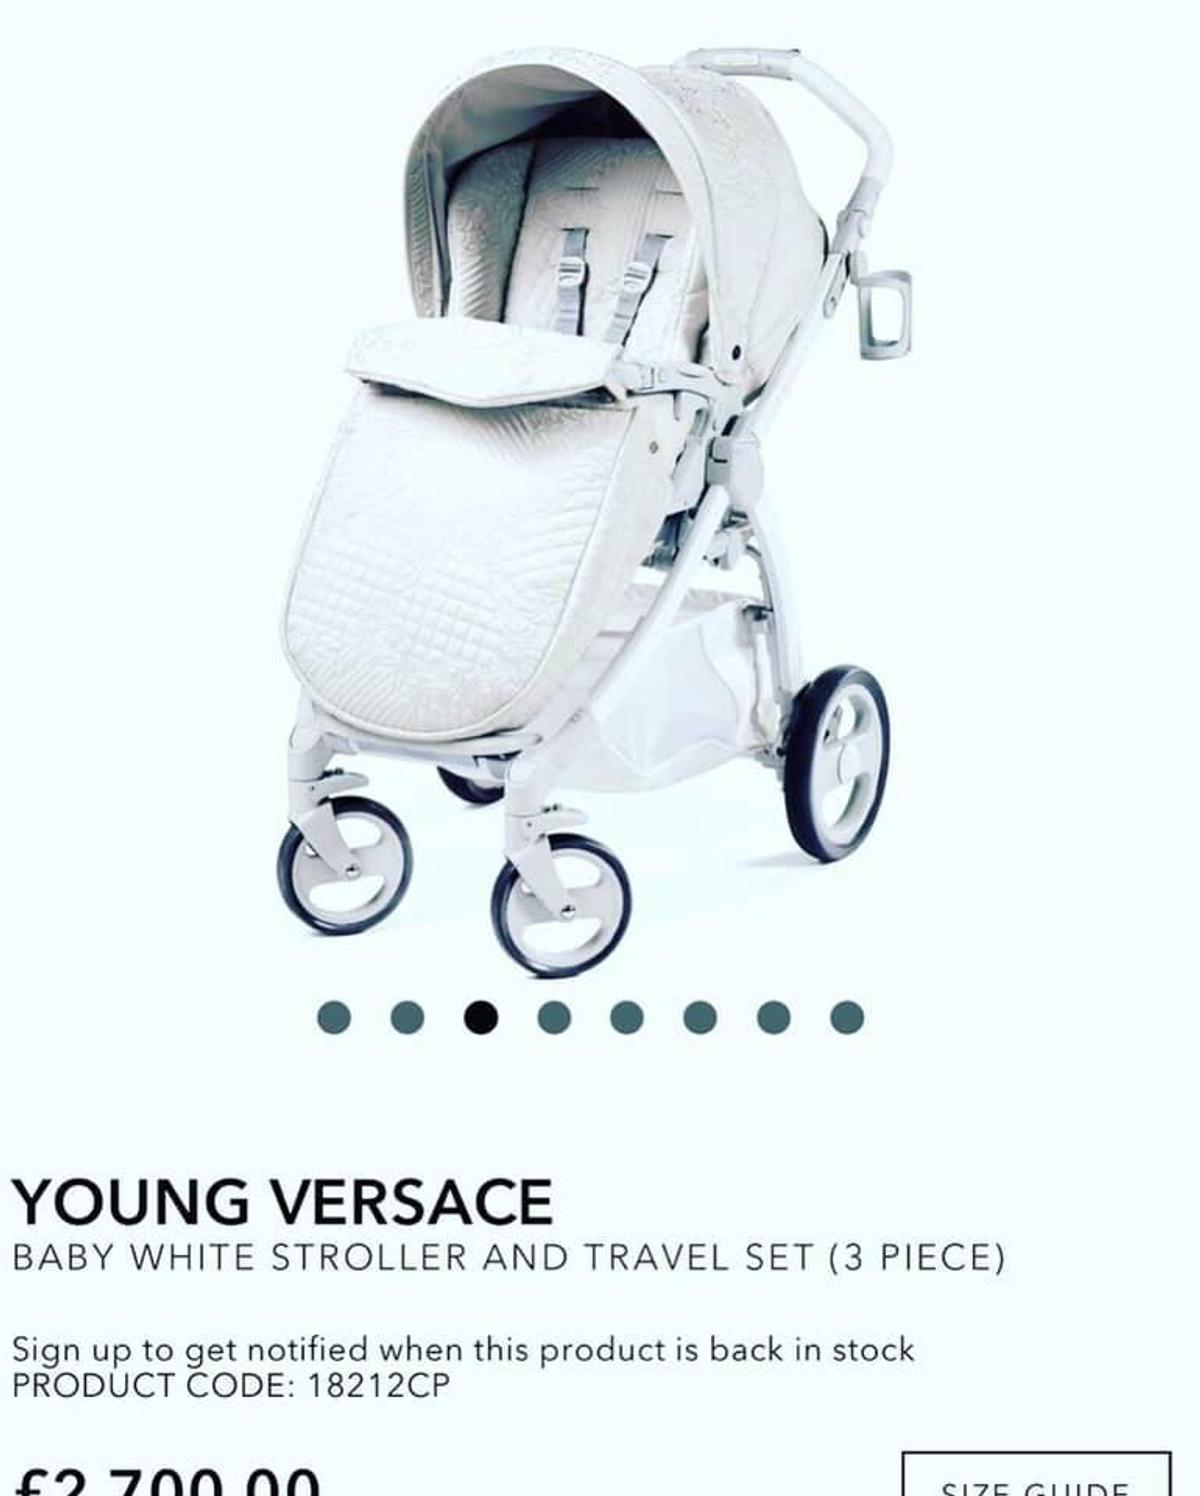 Young Versace Baby White Stroller And Travel Set Young Versace Travel Pram Set In Backford For 1 000 00 For